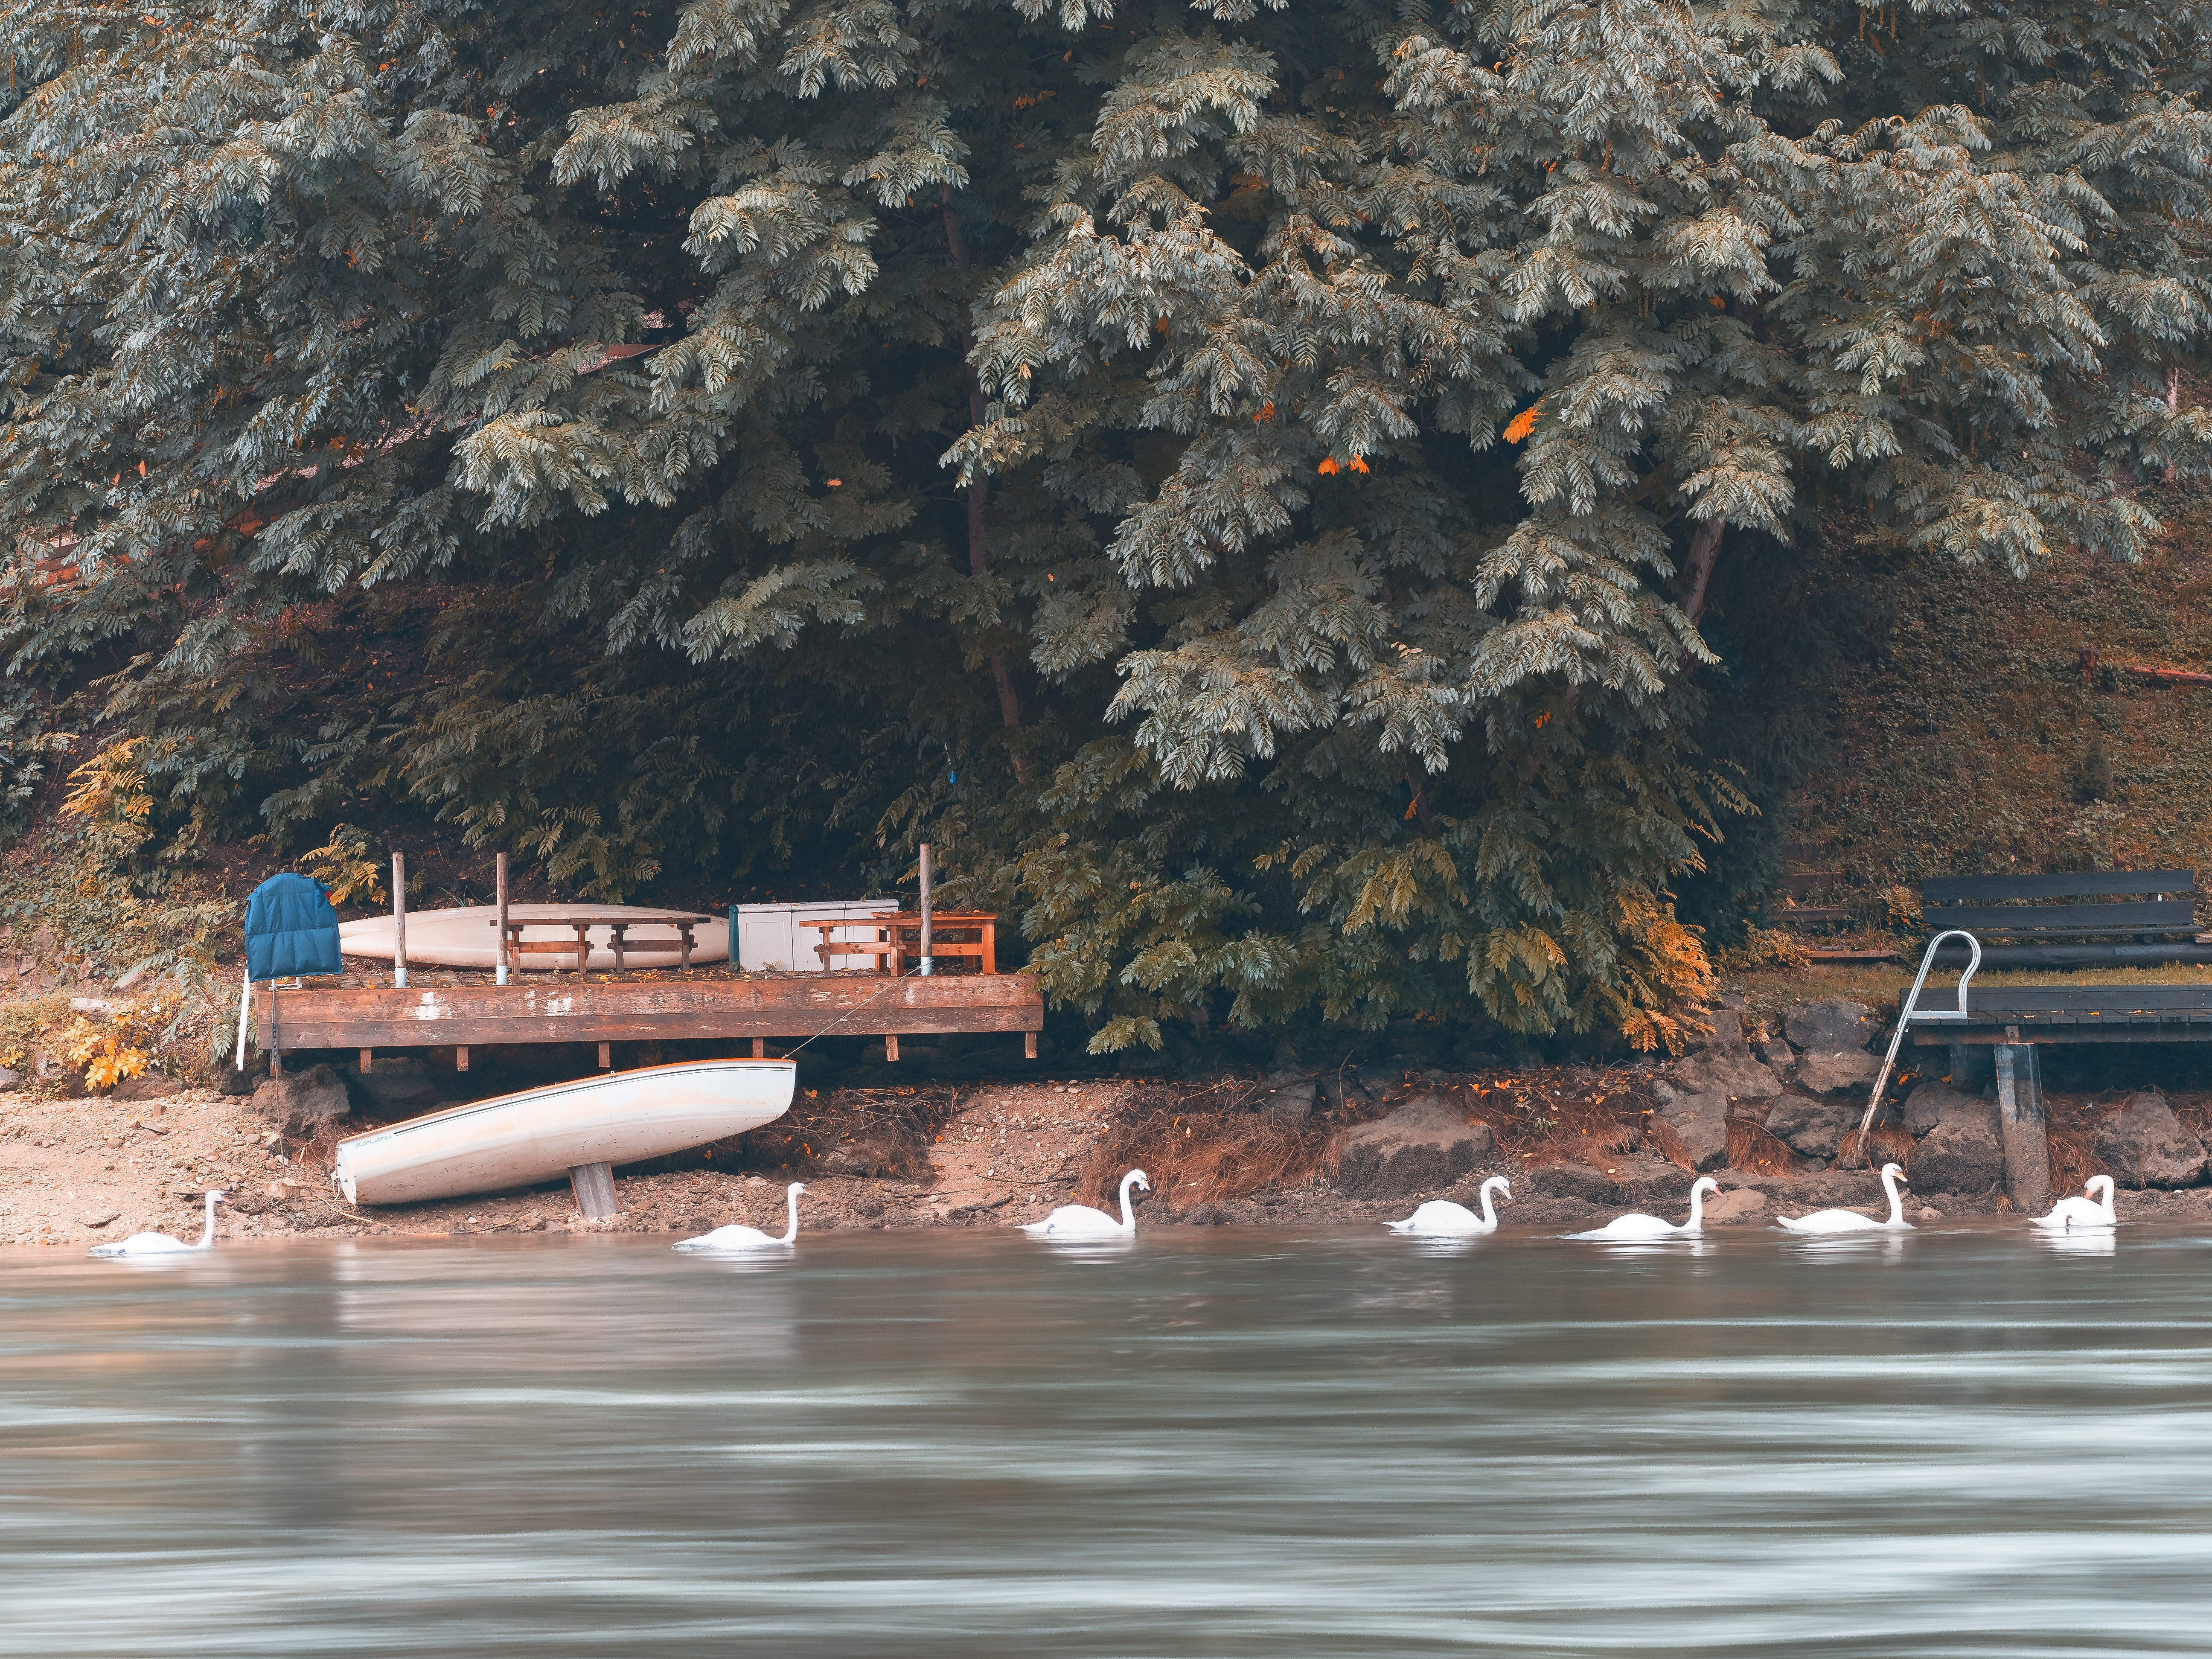 Flock of White Swans on Body of Water Beside Green Trees